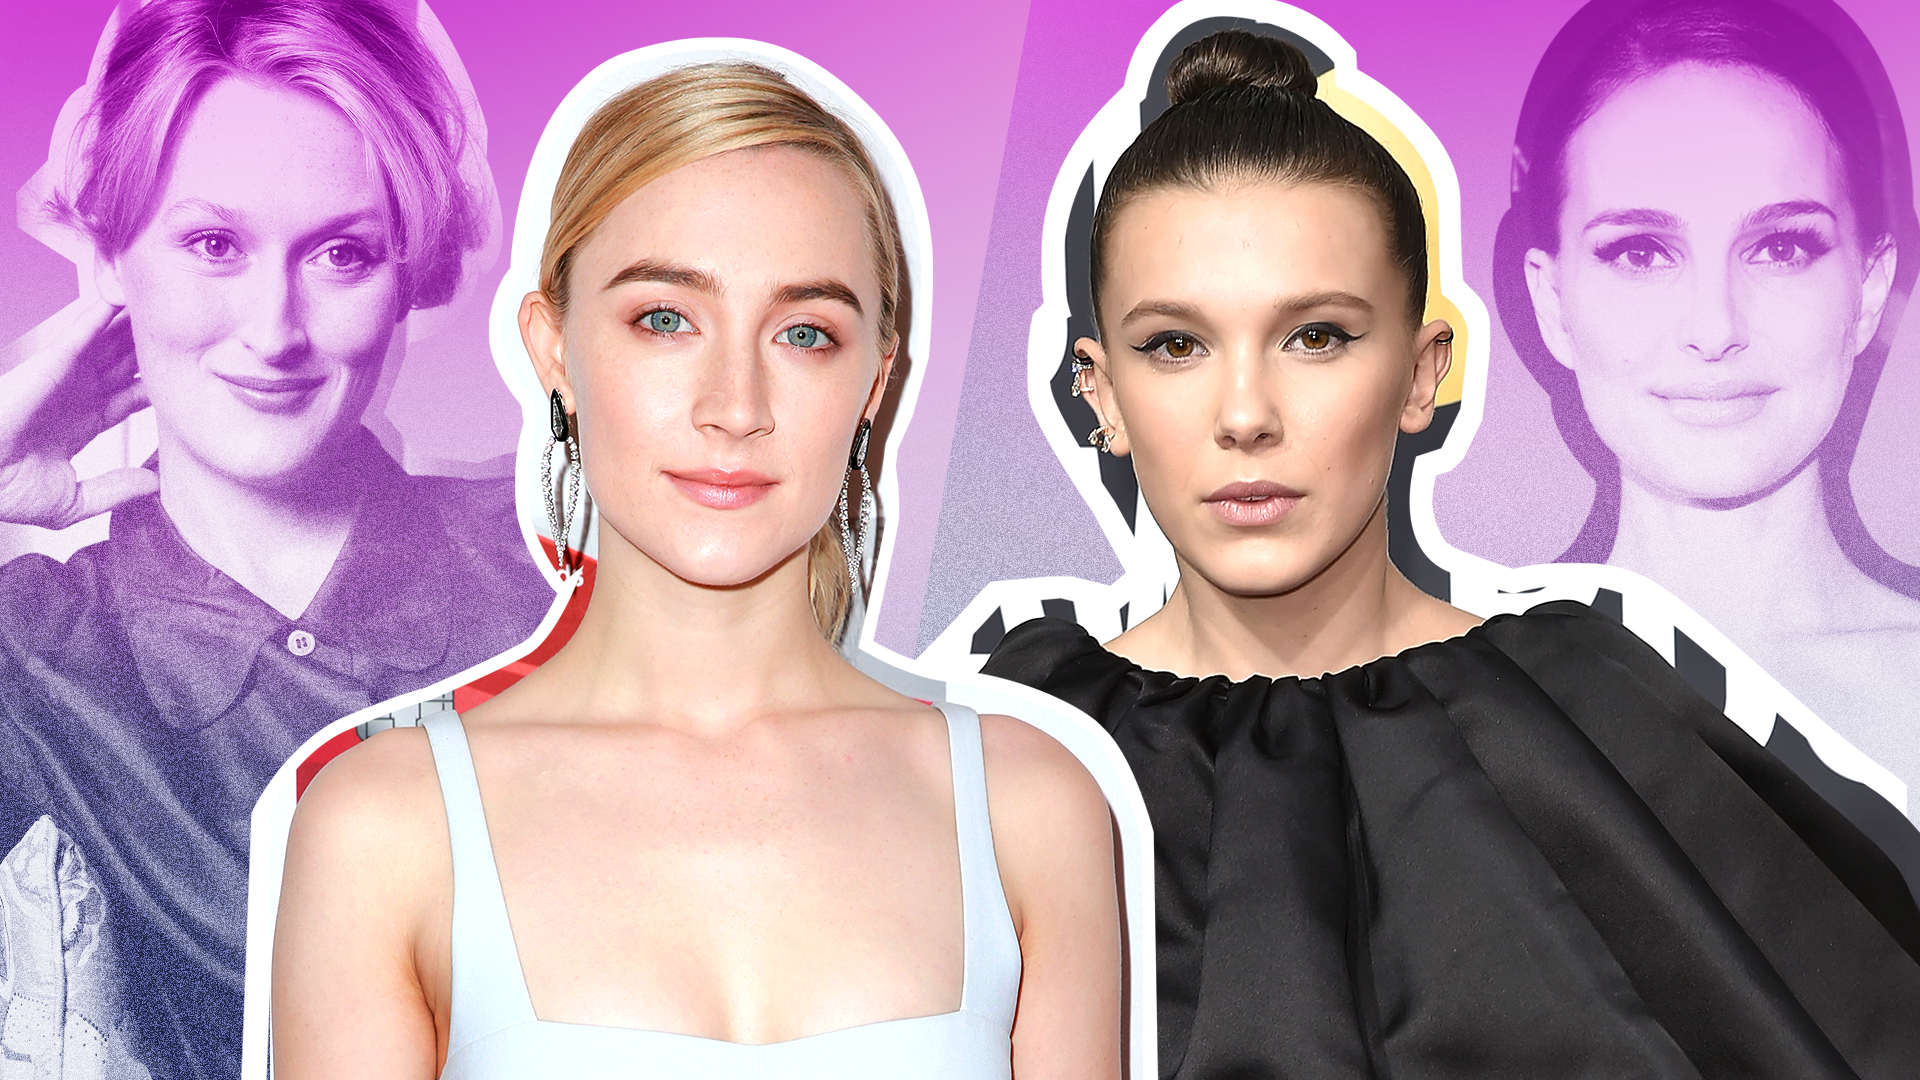 12 Celebrities Who Look Identical to Younger Versions of Other Celebrities